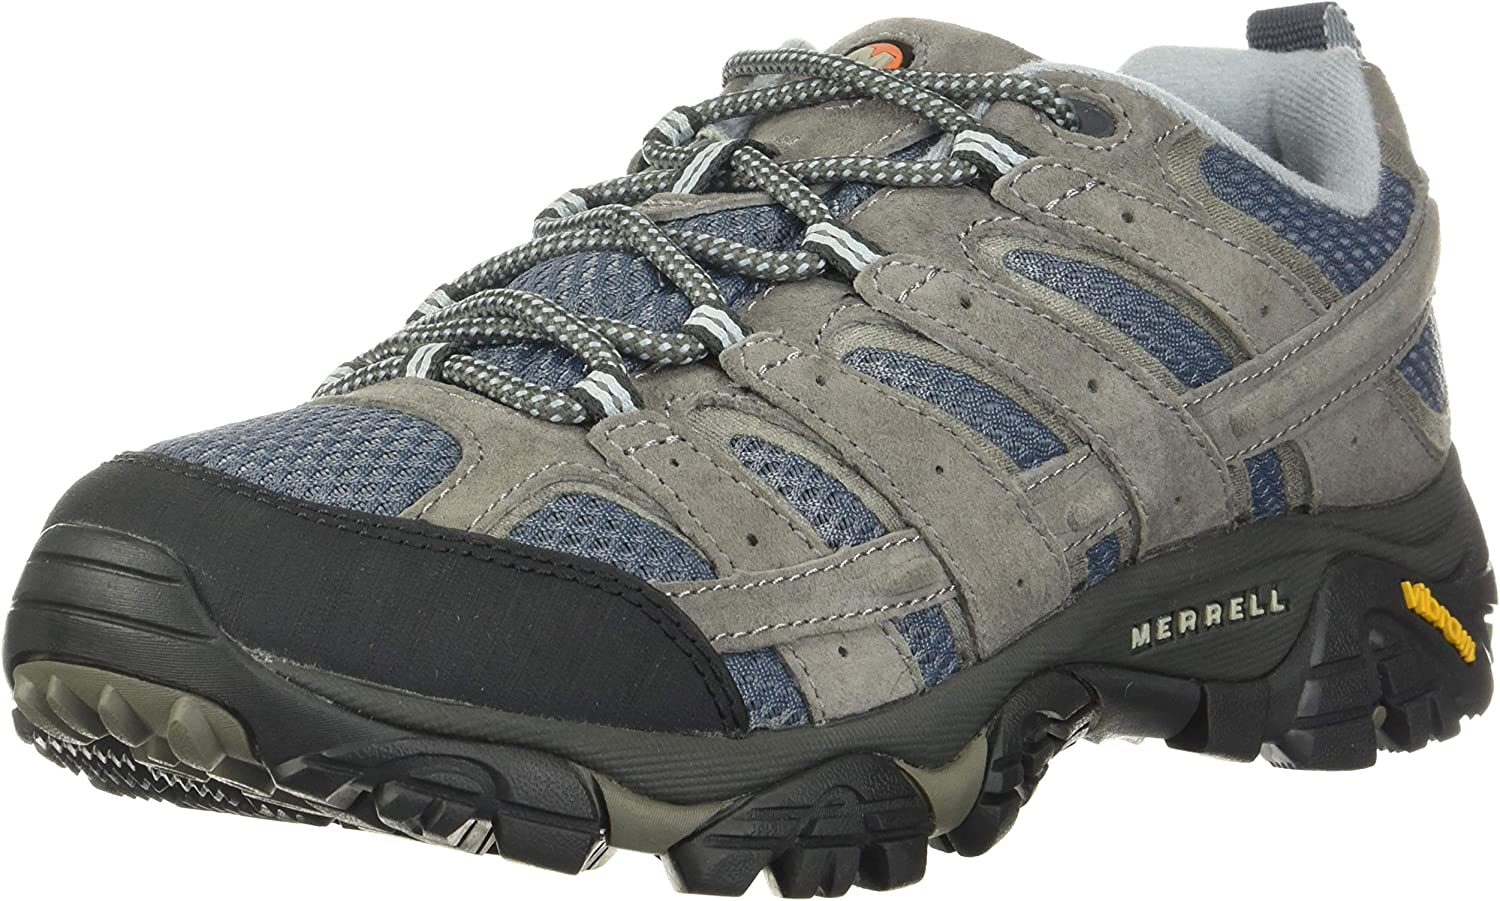 Merrell womens Moab Fixed price for sale 2 Vent Ranking TOP19